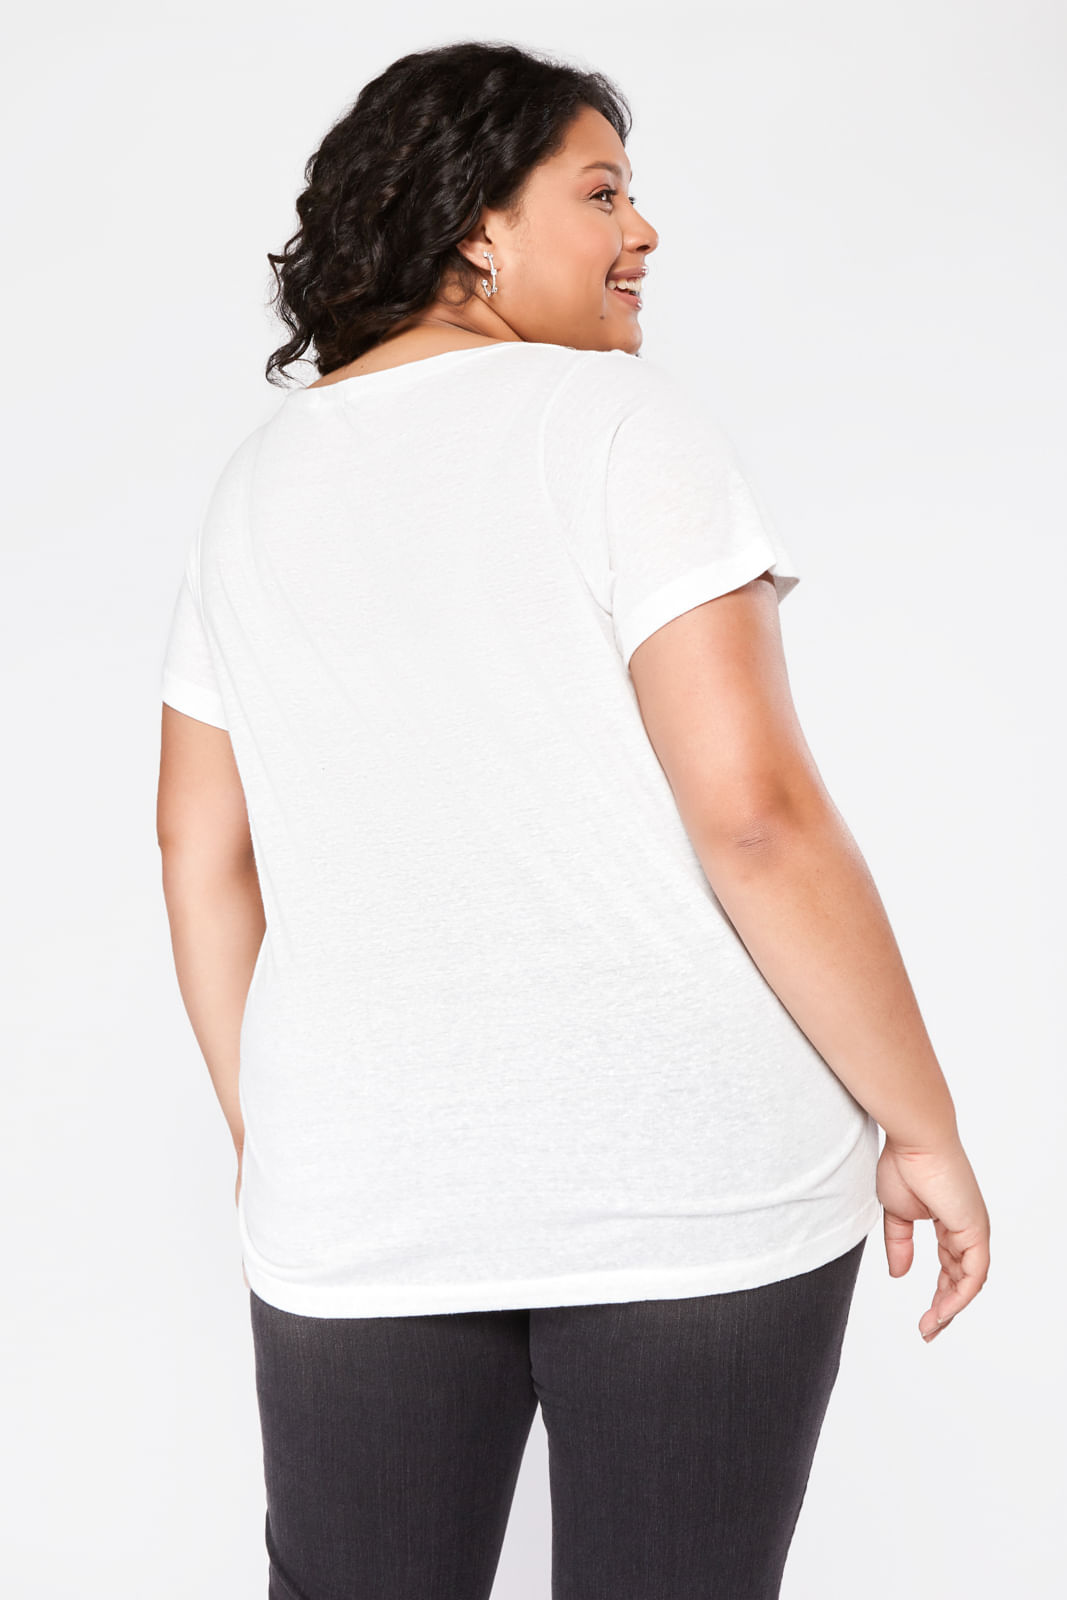 RAI005_Camiseta_Plus_Size_My_Body_Off_White_3